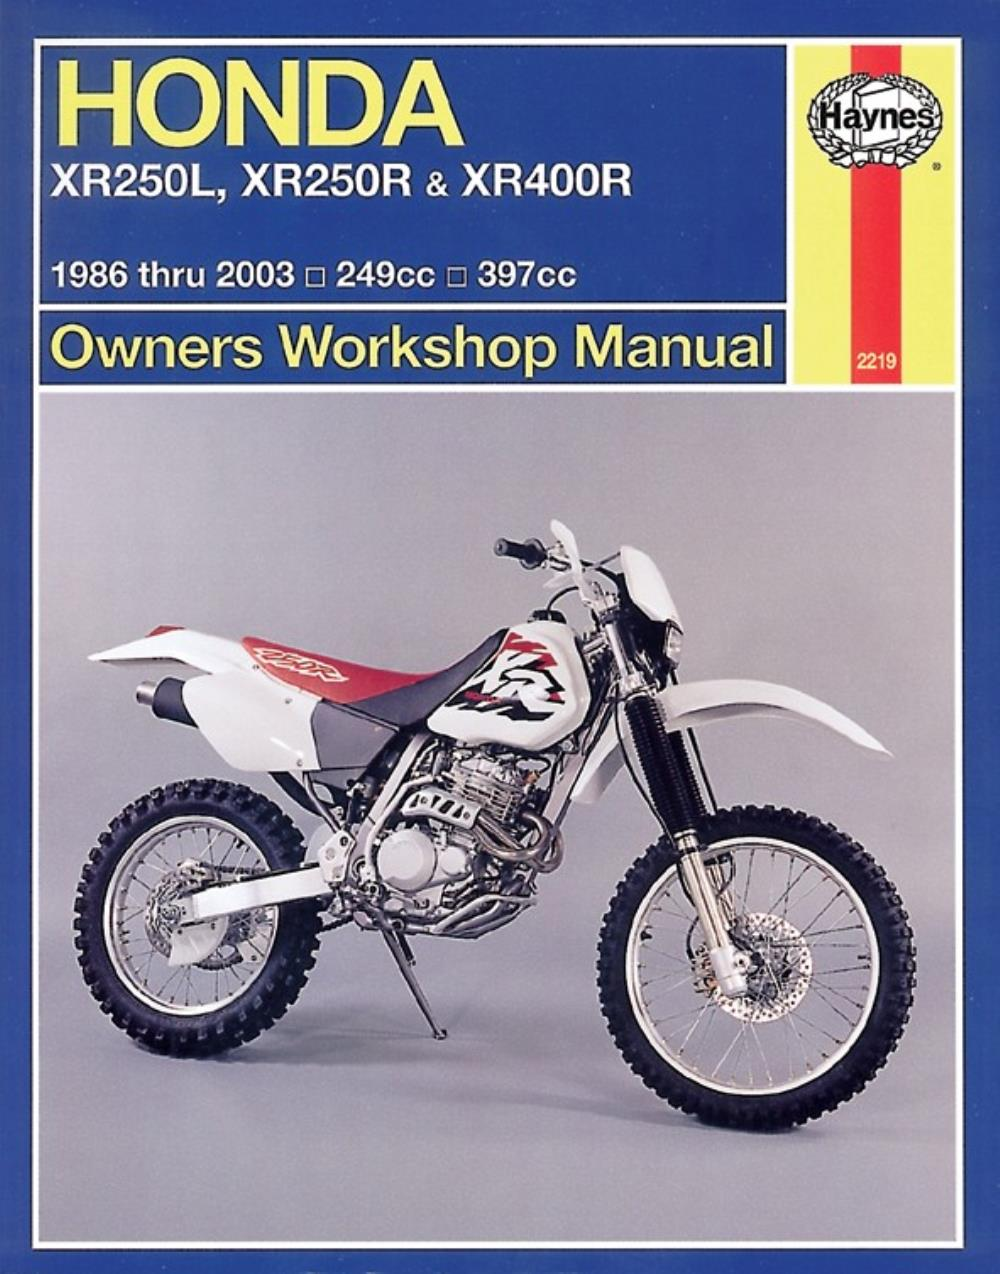 manual haynes for 1996 honda xr 250 rt ebay rh ebay co uk Honda XR 650 manual de taller honda xr 250 tornado pdf gratis